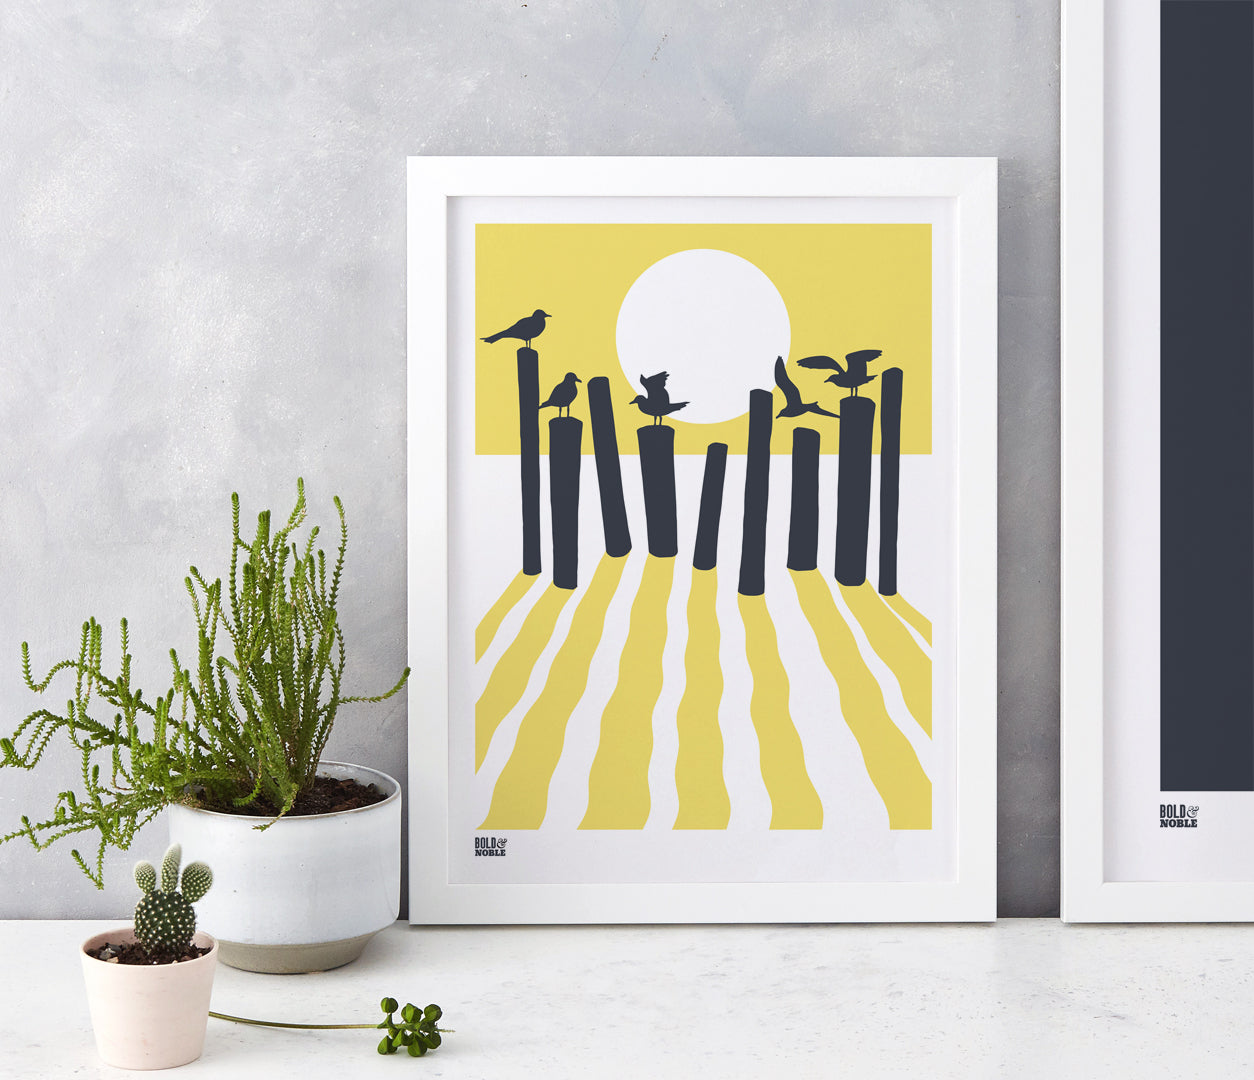 On The Beach in Yellow, fits into standard size frames or can be bespoke framed